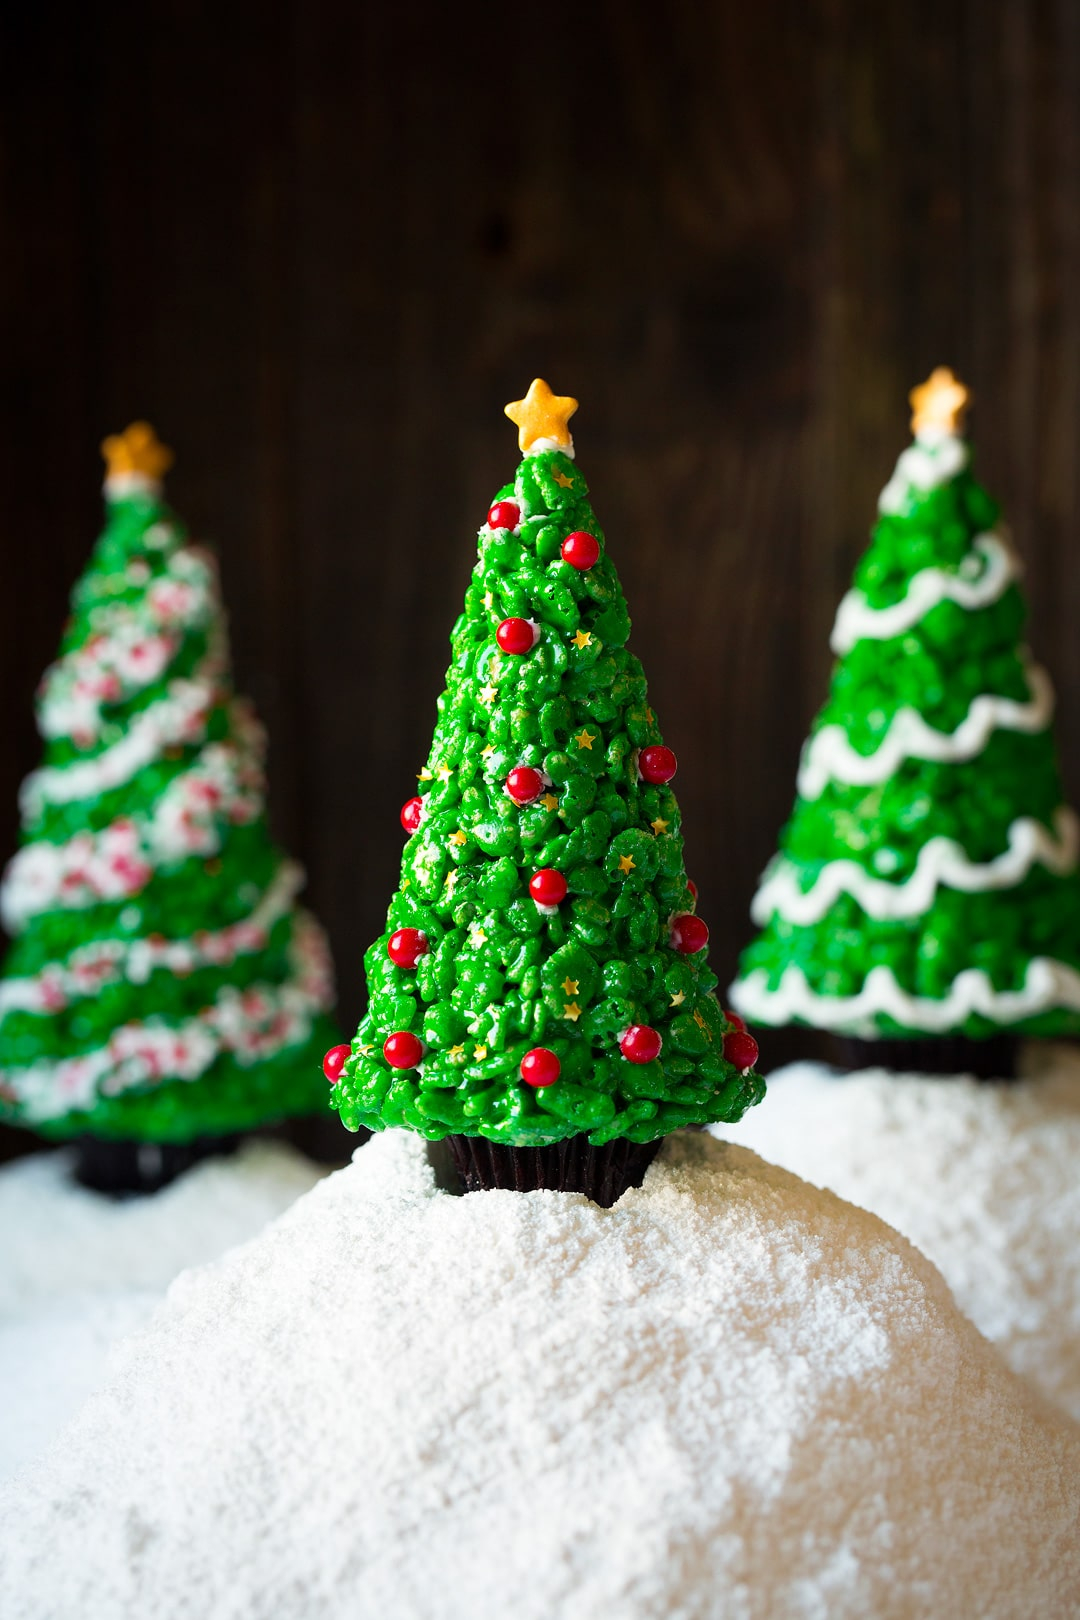 Christmas Tree Rice Krispies Treats - Cooking Classy